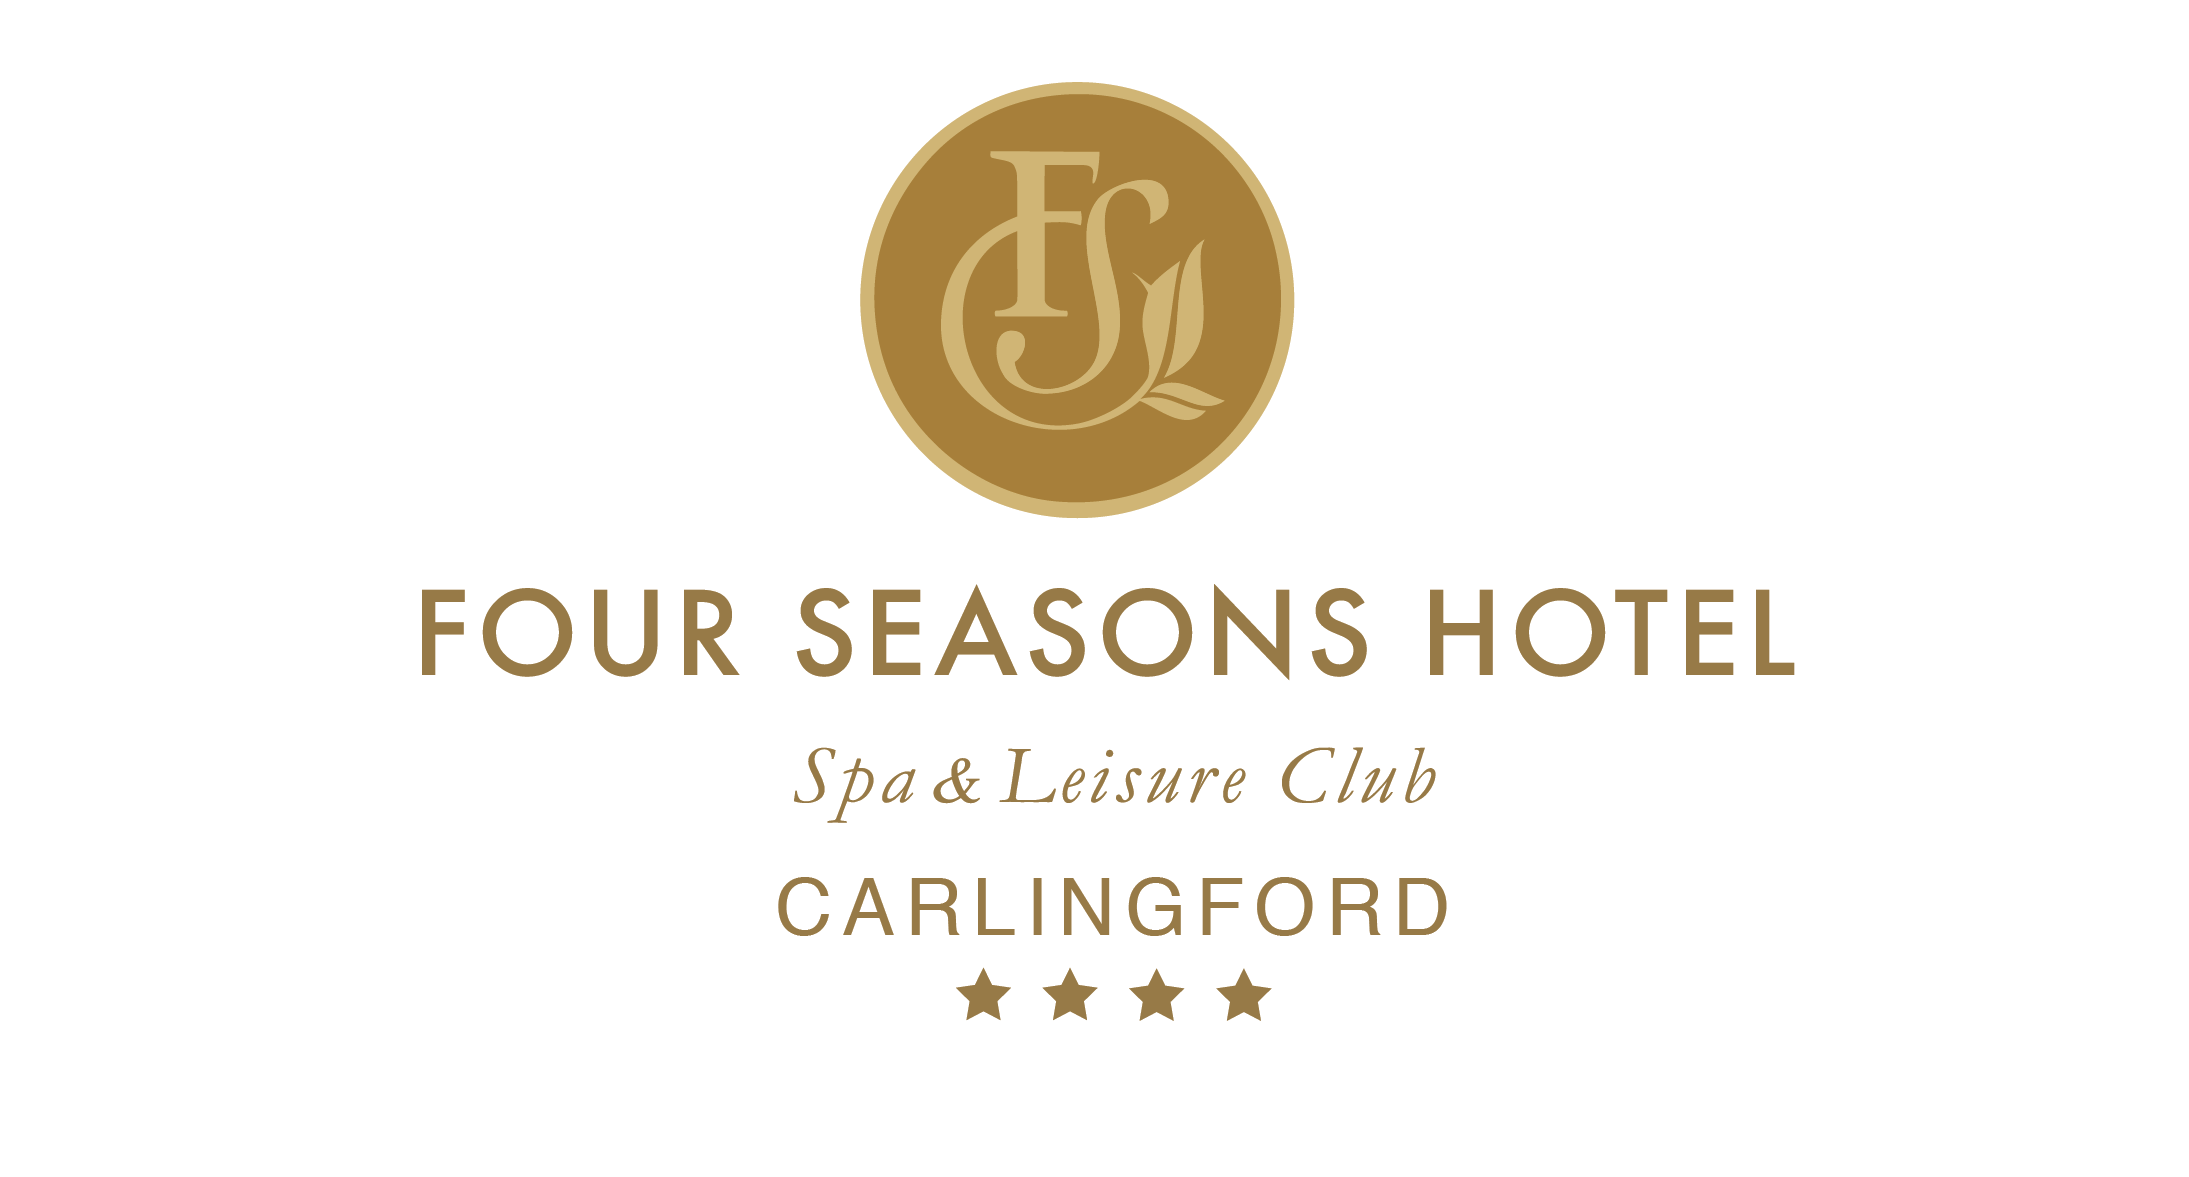 Four Seasons Hotel, Spa & Leisure Club, Carlingford Logo 1